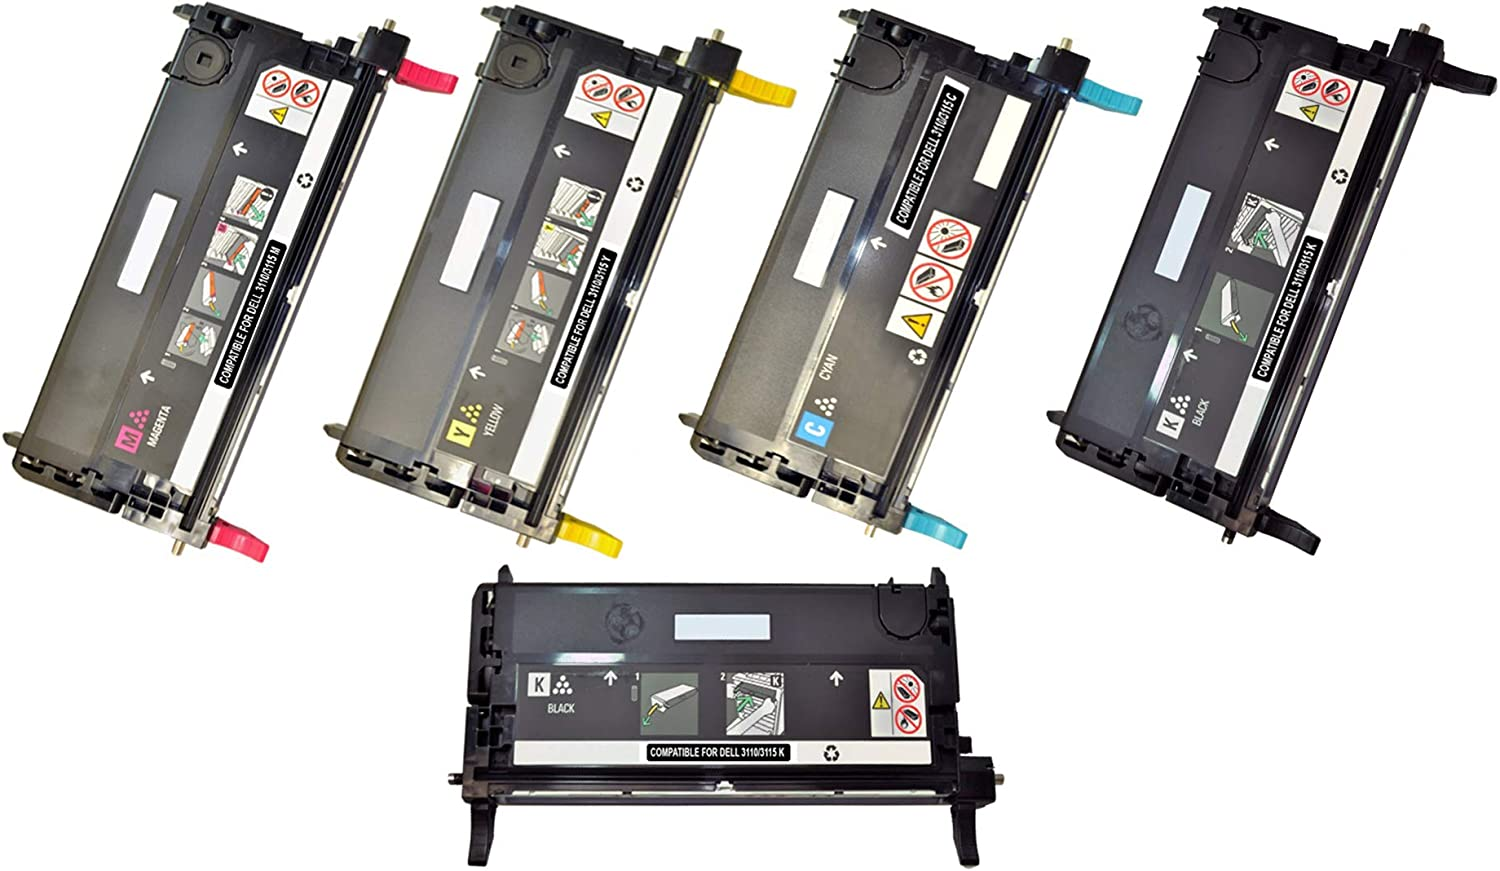 Speedy Toner DELL 3115cn Remanufactured High Yield Capacity Laser Toner Cartridges Replacement for DELL 3110/3115 cn, Set of 5 Toner